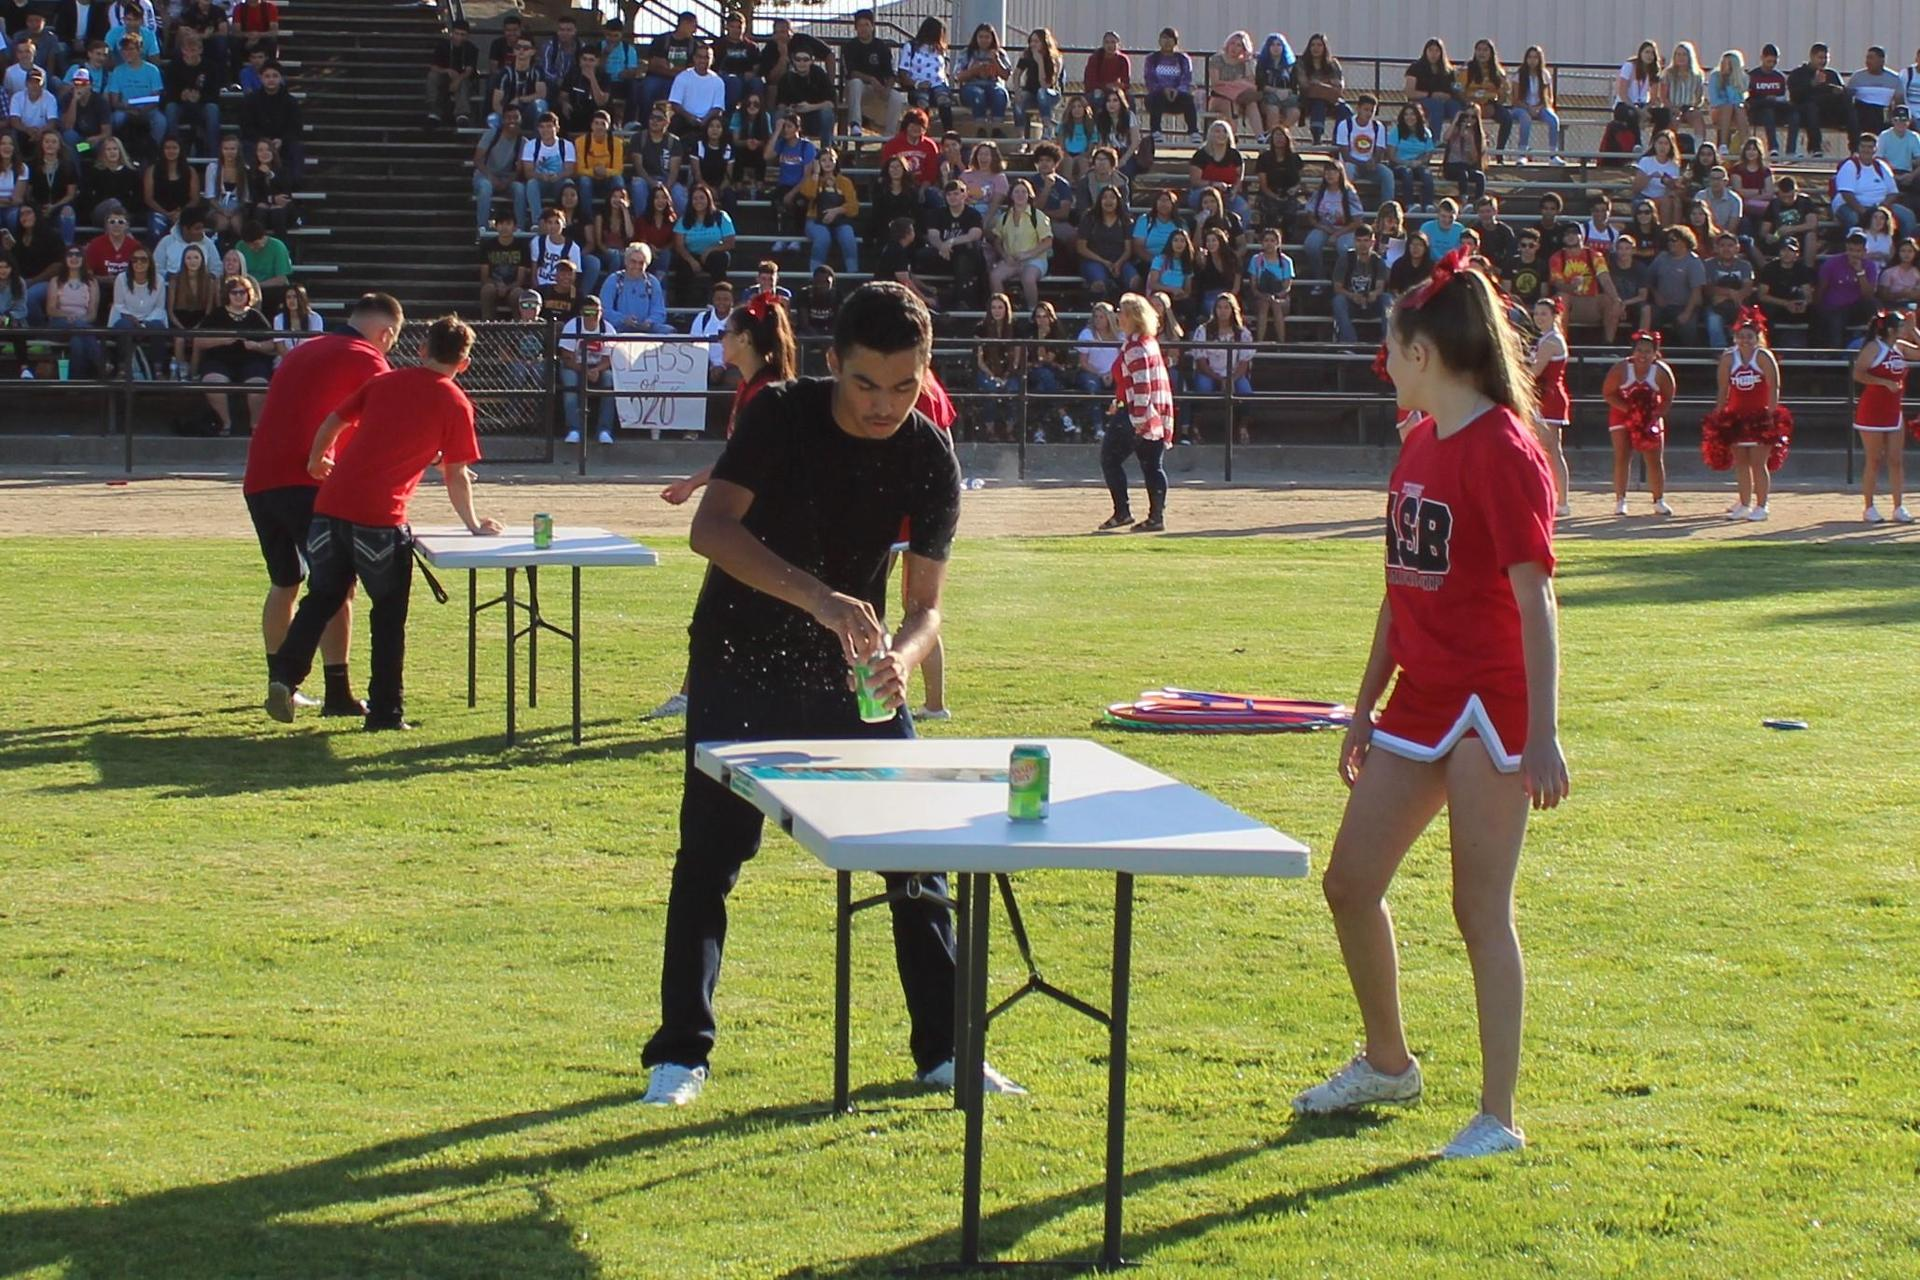 Students participating in a rally game